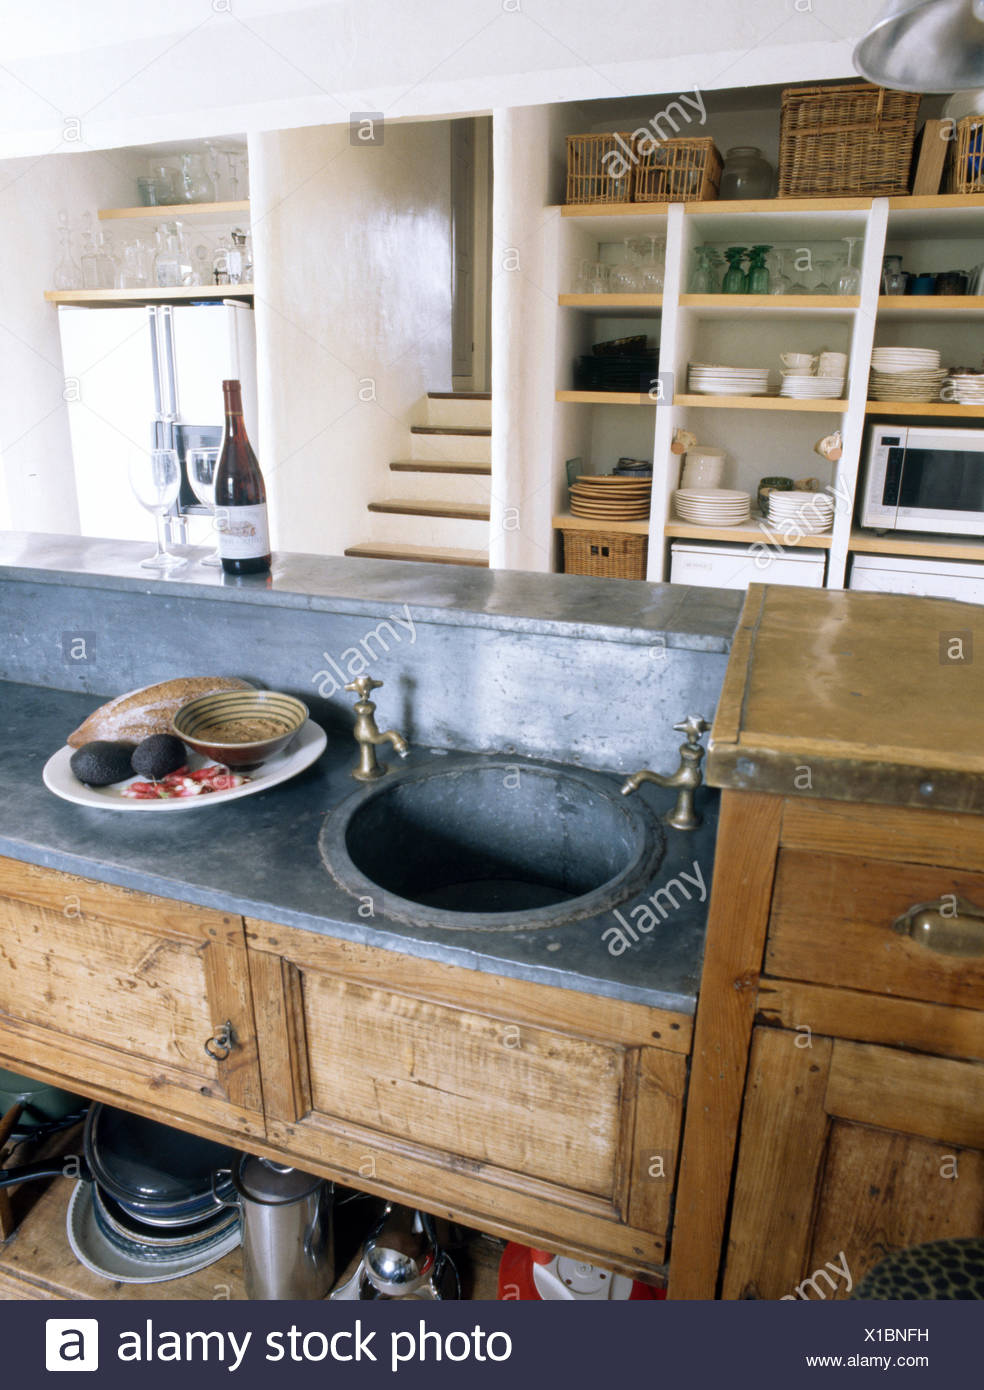 Circular Antique Zinc Sink Set Into Zinc Topped Old Wooden Sideboard In  French Kitchen